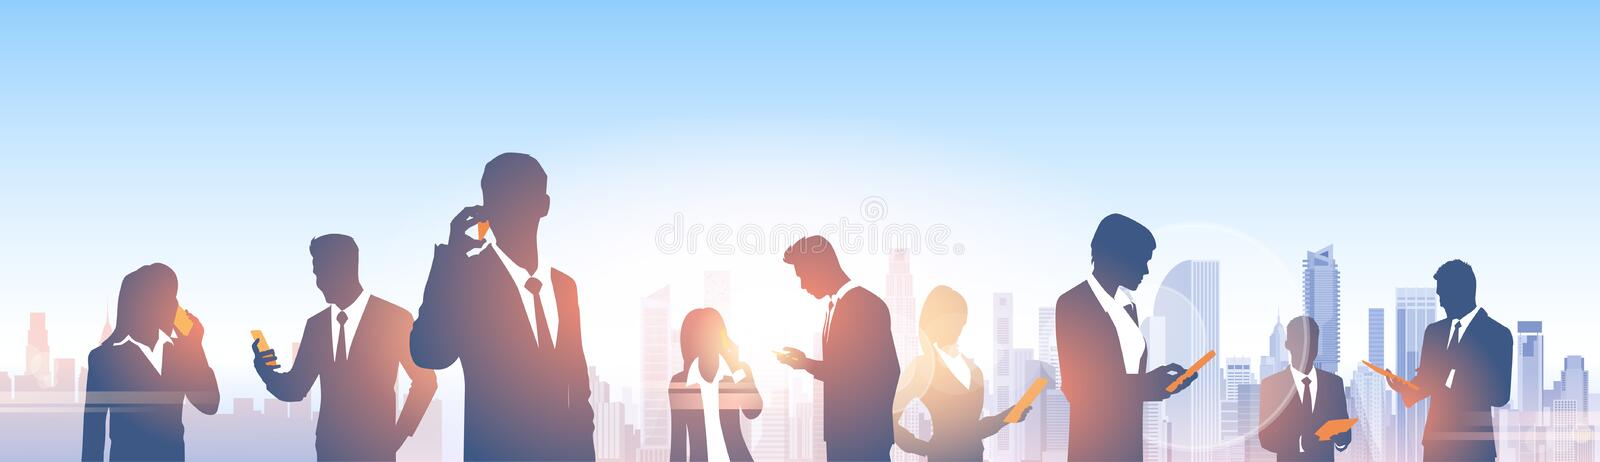 Business People Group Silhouettes Over City Landscape Modern Office Social Network. Communication Vector Illustration royalty free illustration